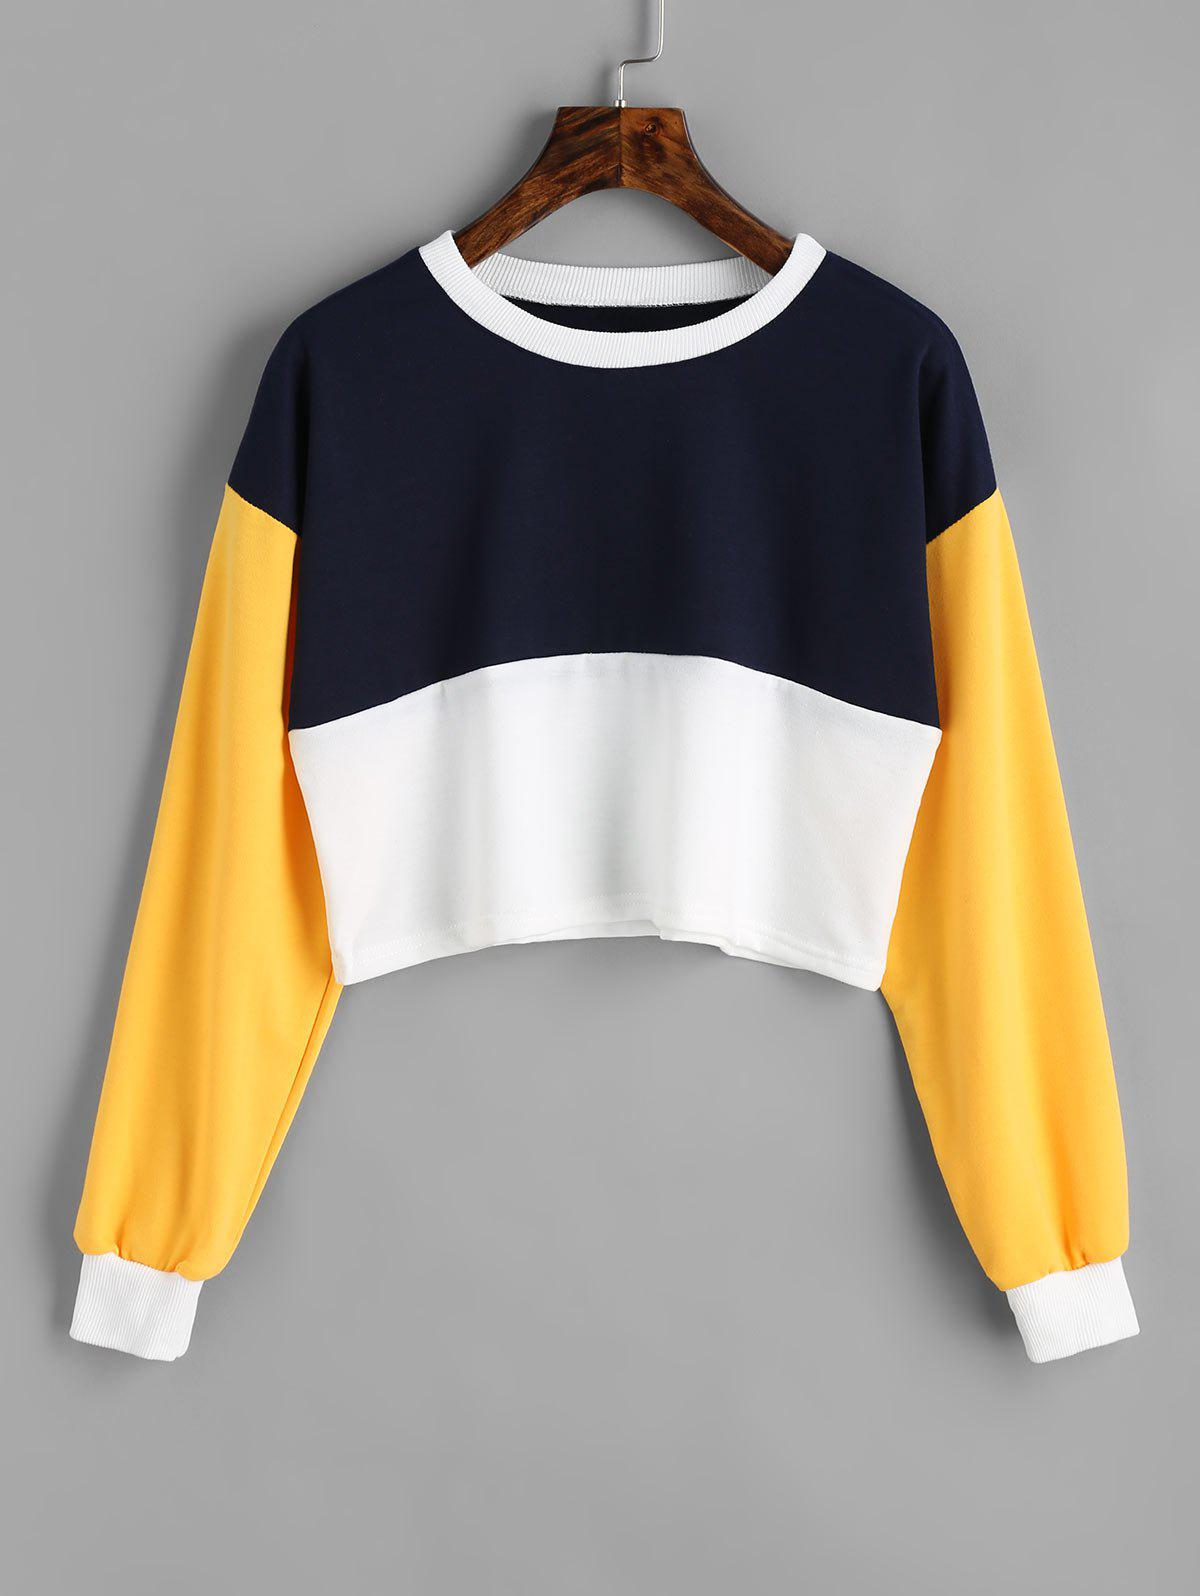 Contrast Cropped Sweatshirt - PURPLISHBLUE / WHITE S